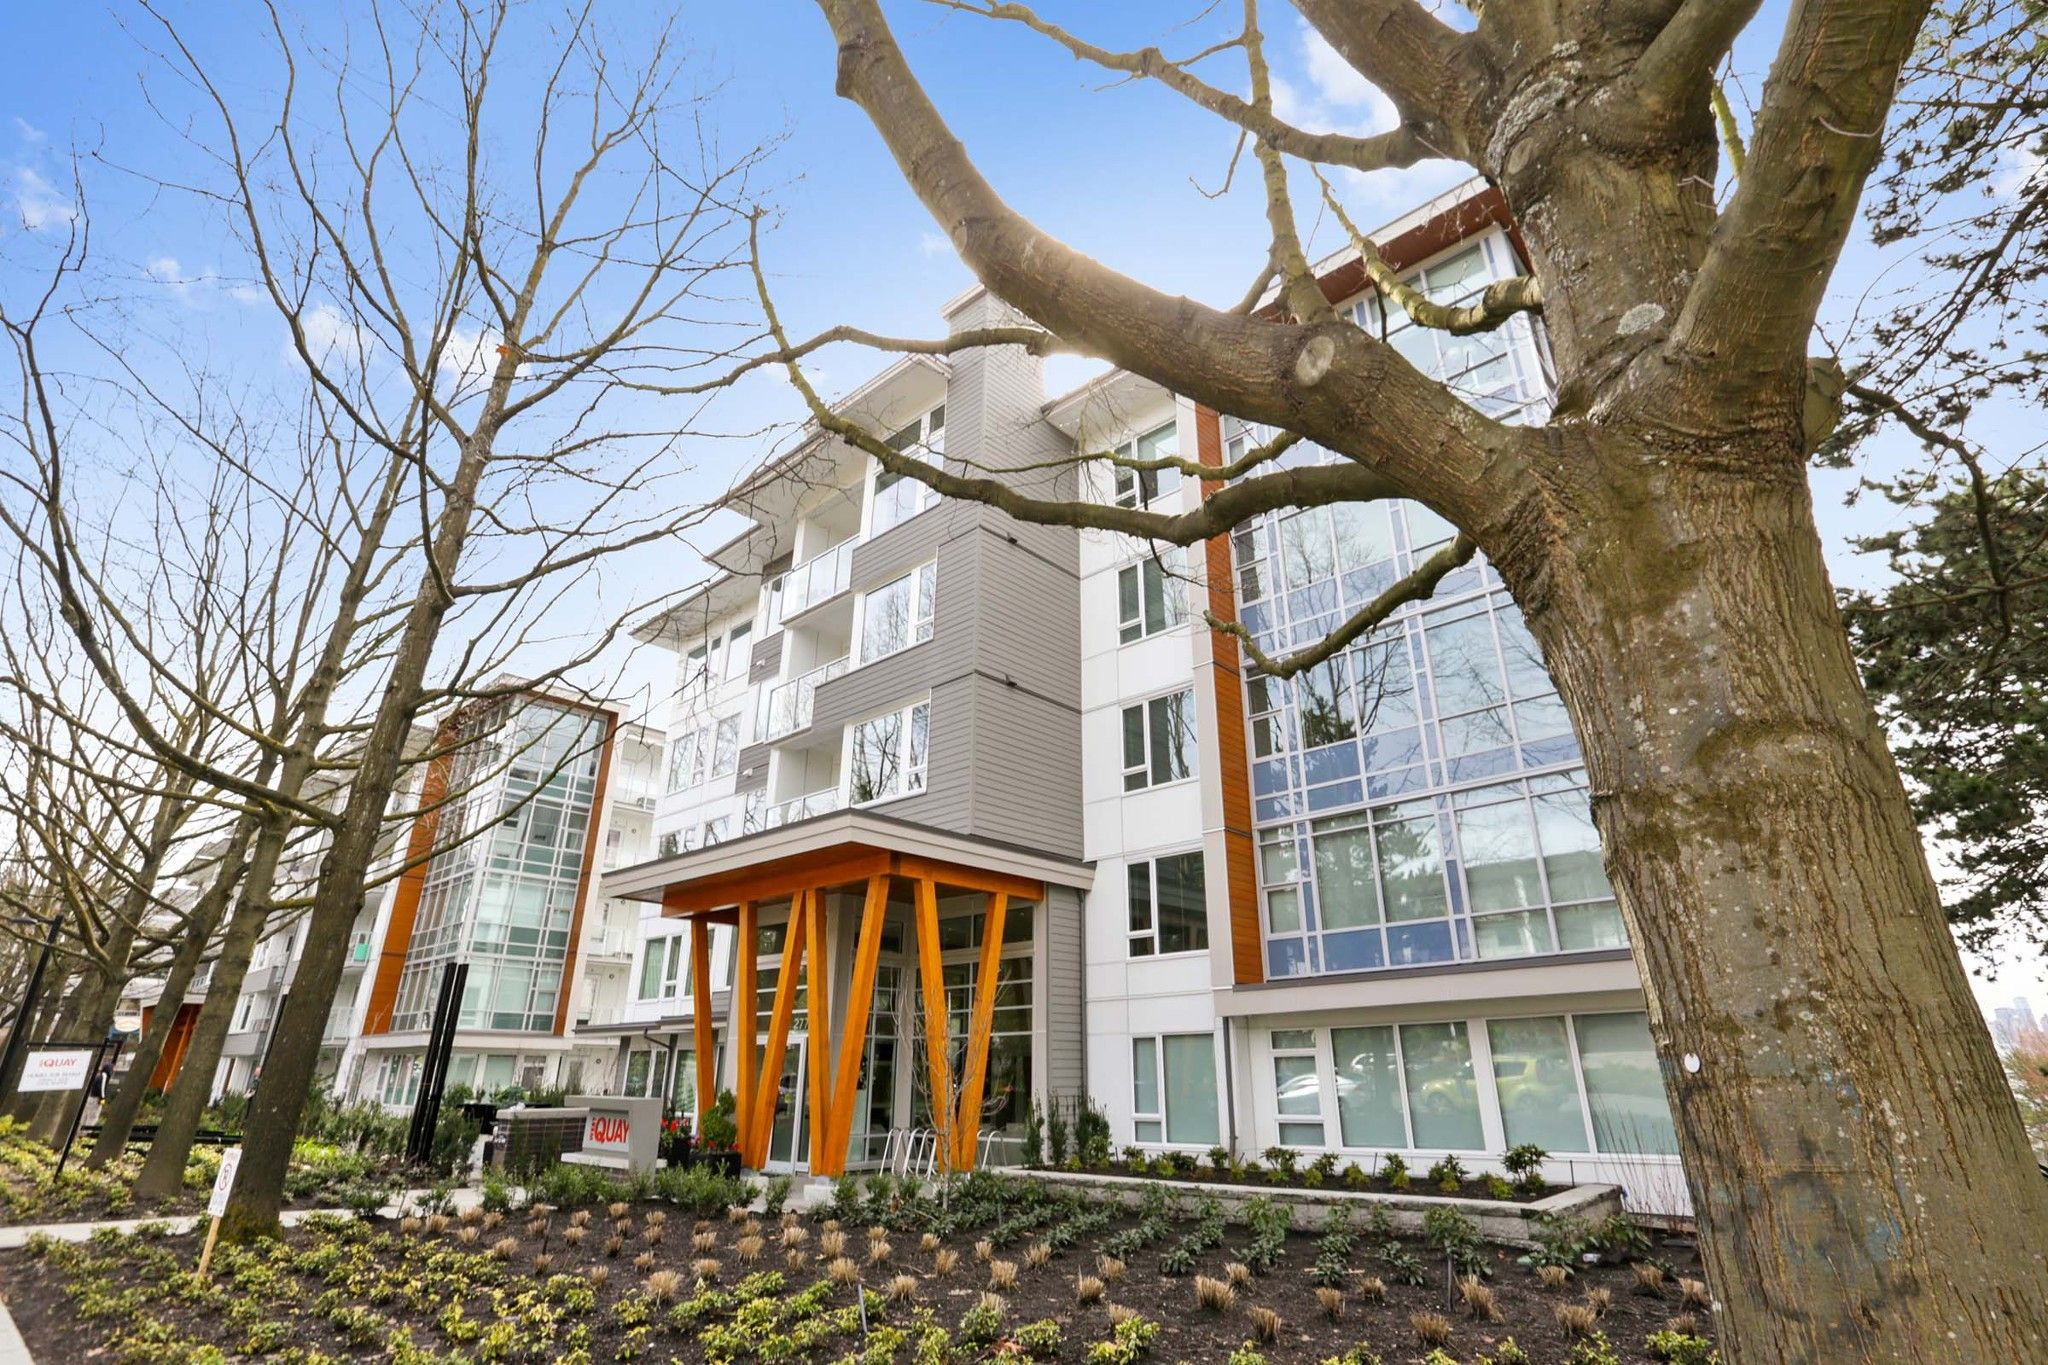 """Main Photo: 313 277 W 1 Street in North Vancouver: Lower Lonsdale Condo for sale in """"West Quay"""" : MLS®# R2252206"""